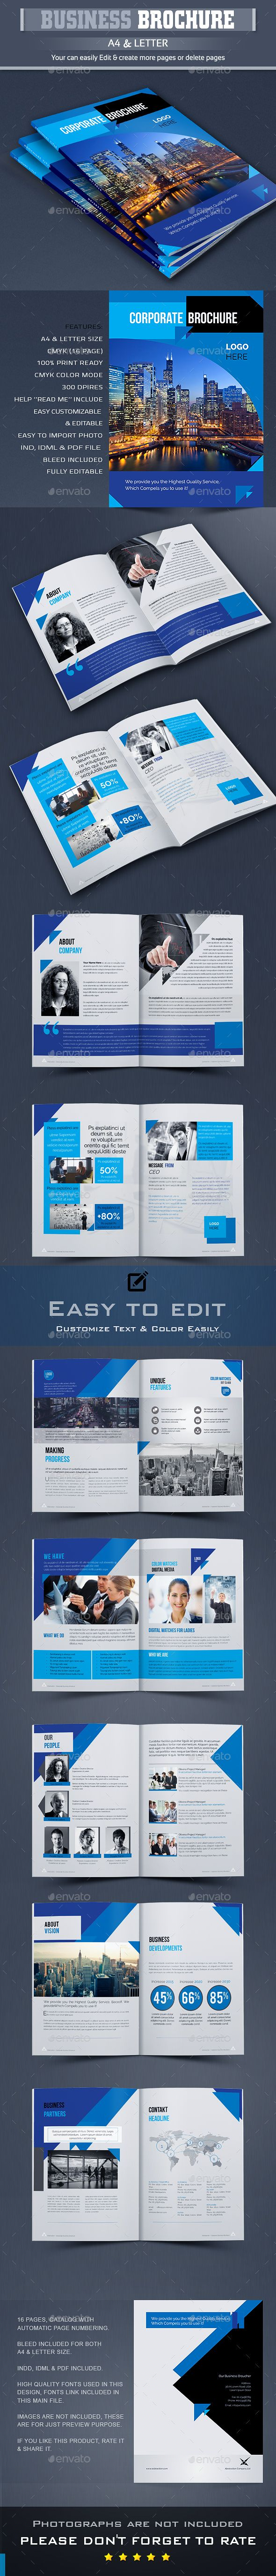 #Corporate #Business #Brochure #Template - #Company Brochures #Print #Design. Download here: https://graphicriver.net/item/brochure/19635822?ref=yinkira